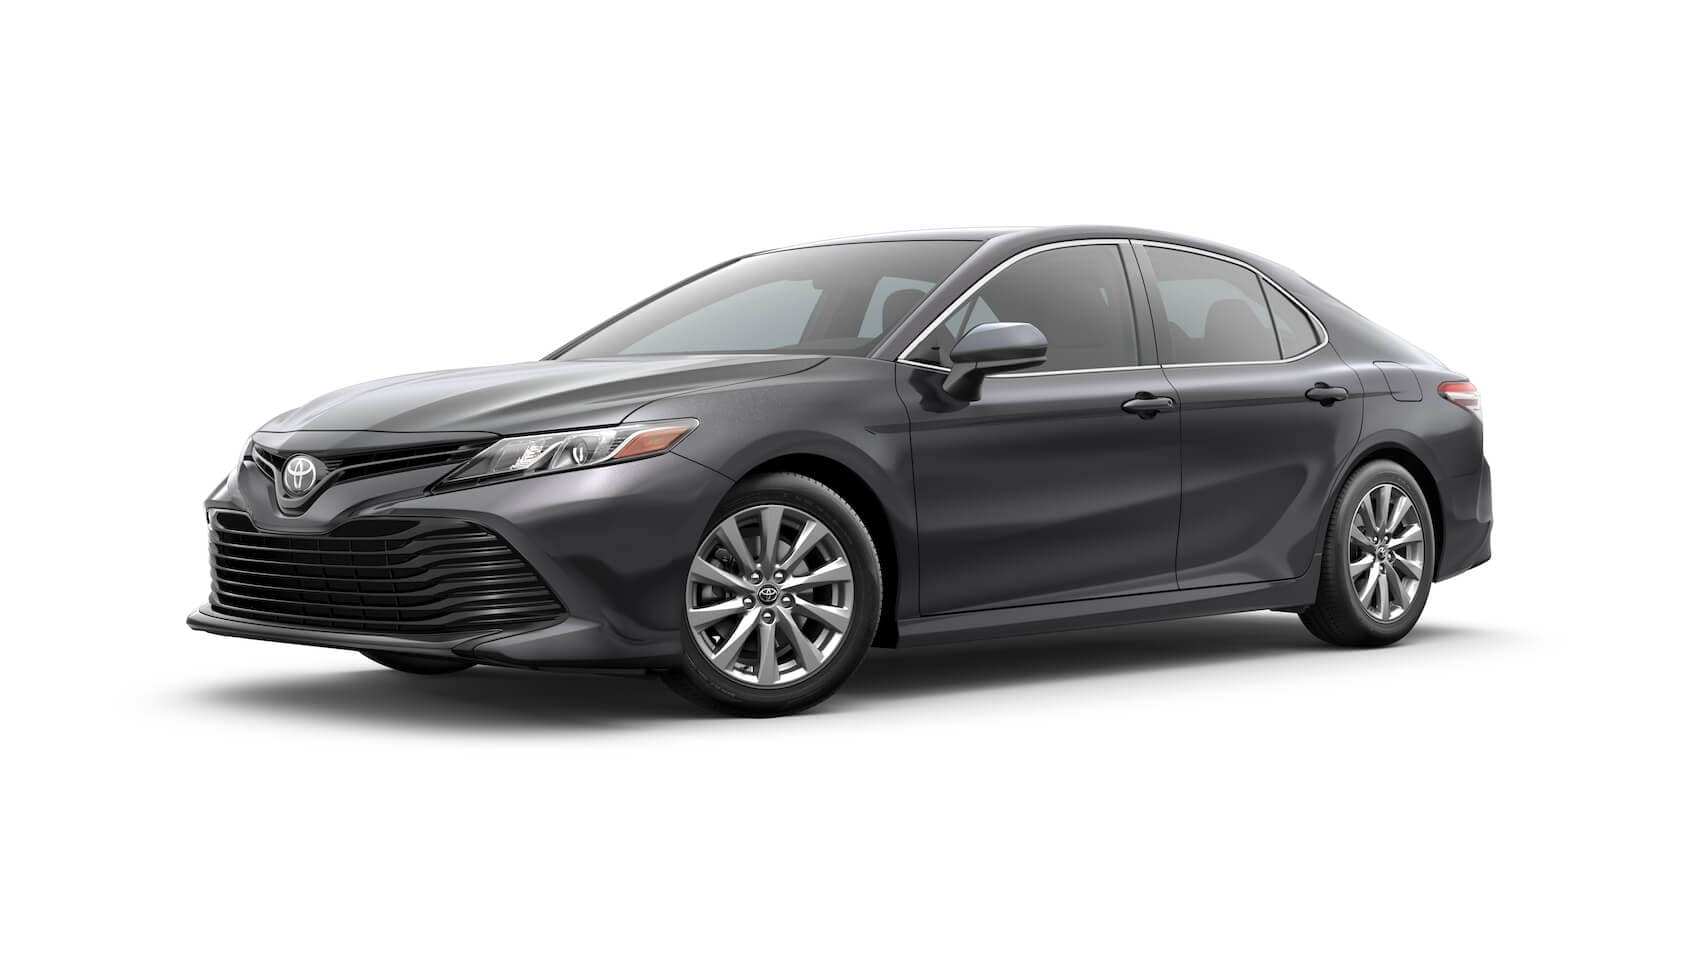 Used 2020 Toyota Camry for sale near New Hope, PA